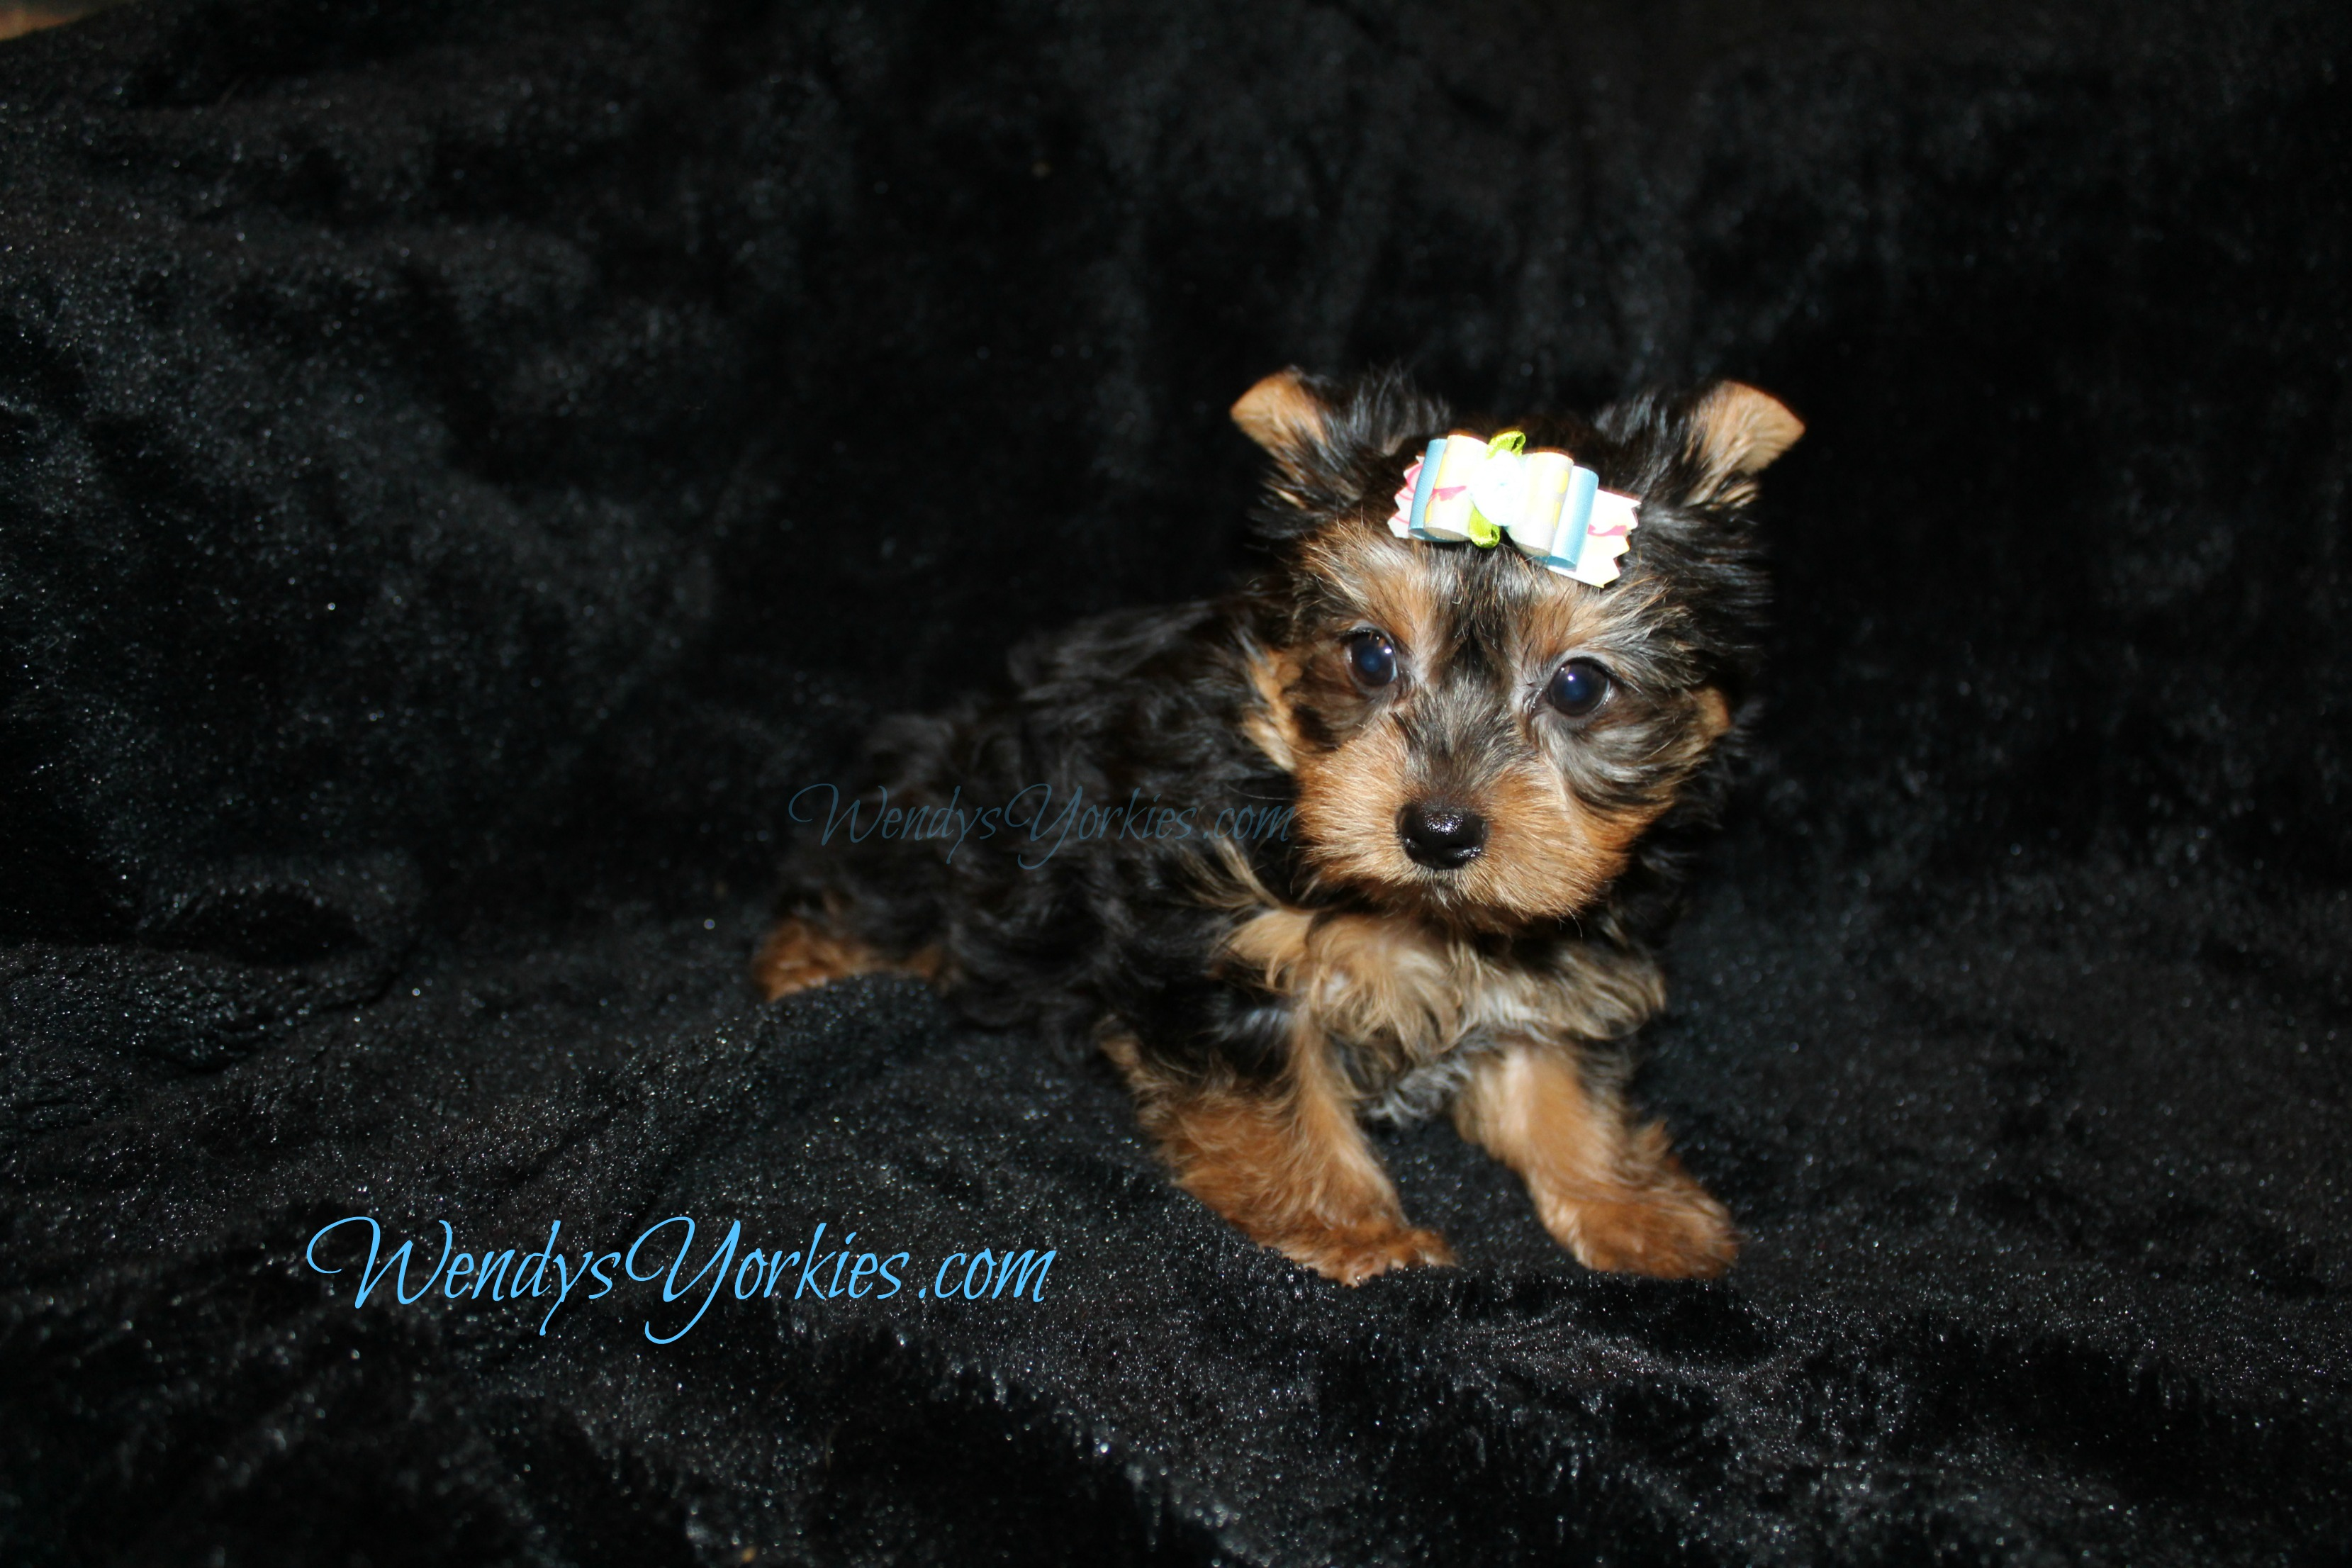 Yorkie puppies for sale in Texas, Male Yorkie puppy for sale, Anna m1, WendysYorkies.com